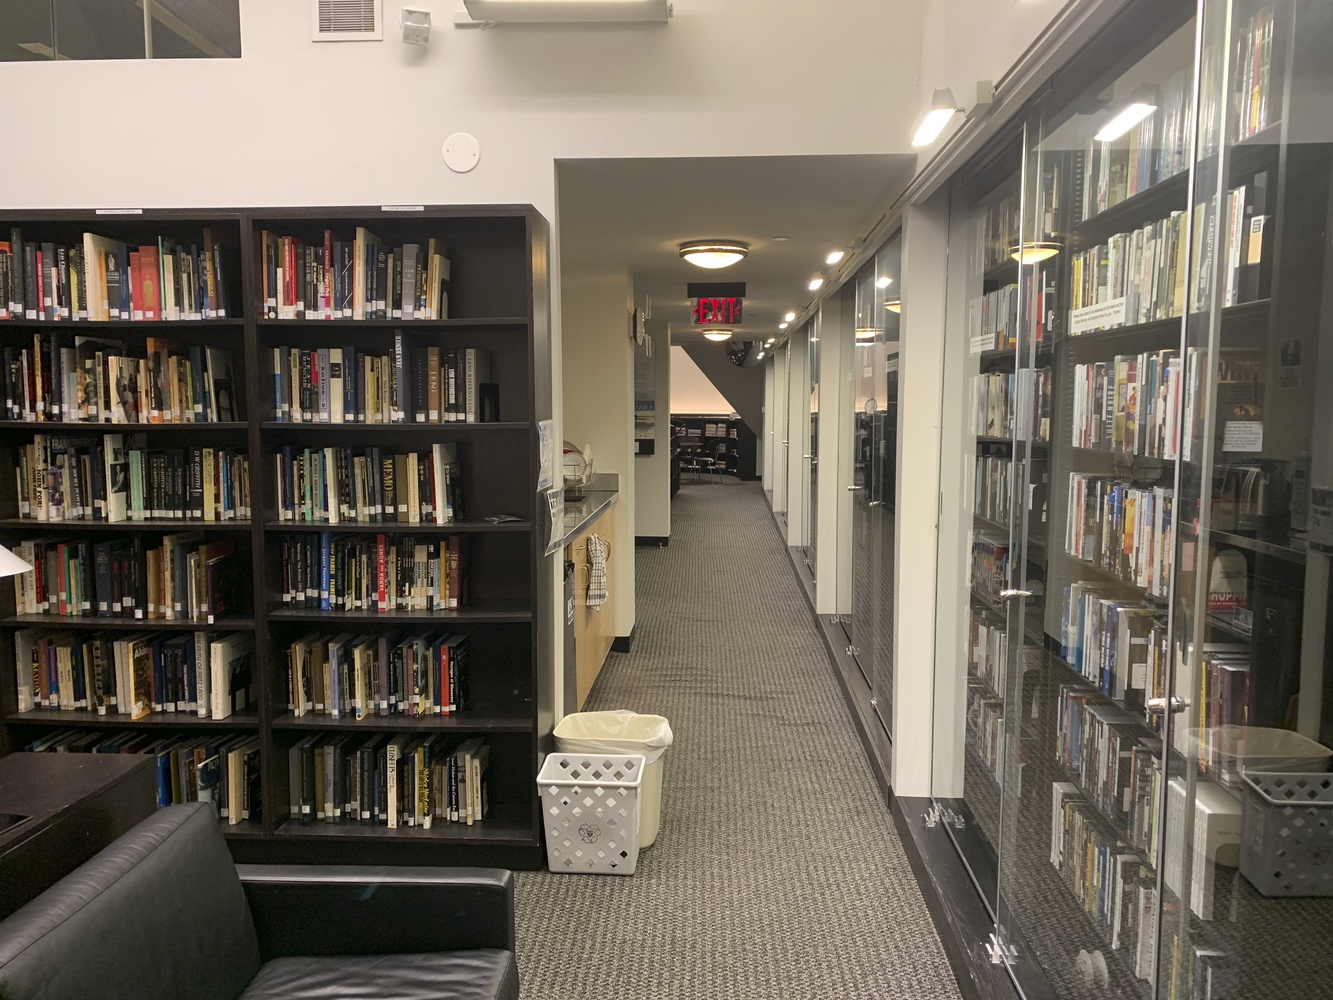 The fourth floor of Sever Hall houses the Visual and Environmental Studies department's film library. The Faculty of Arts and Sciences will discuss a potential change to the department's name.